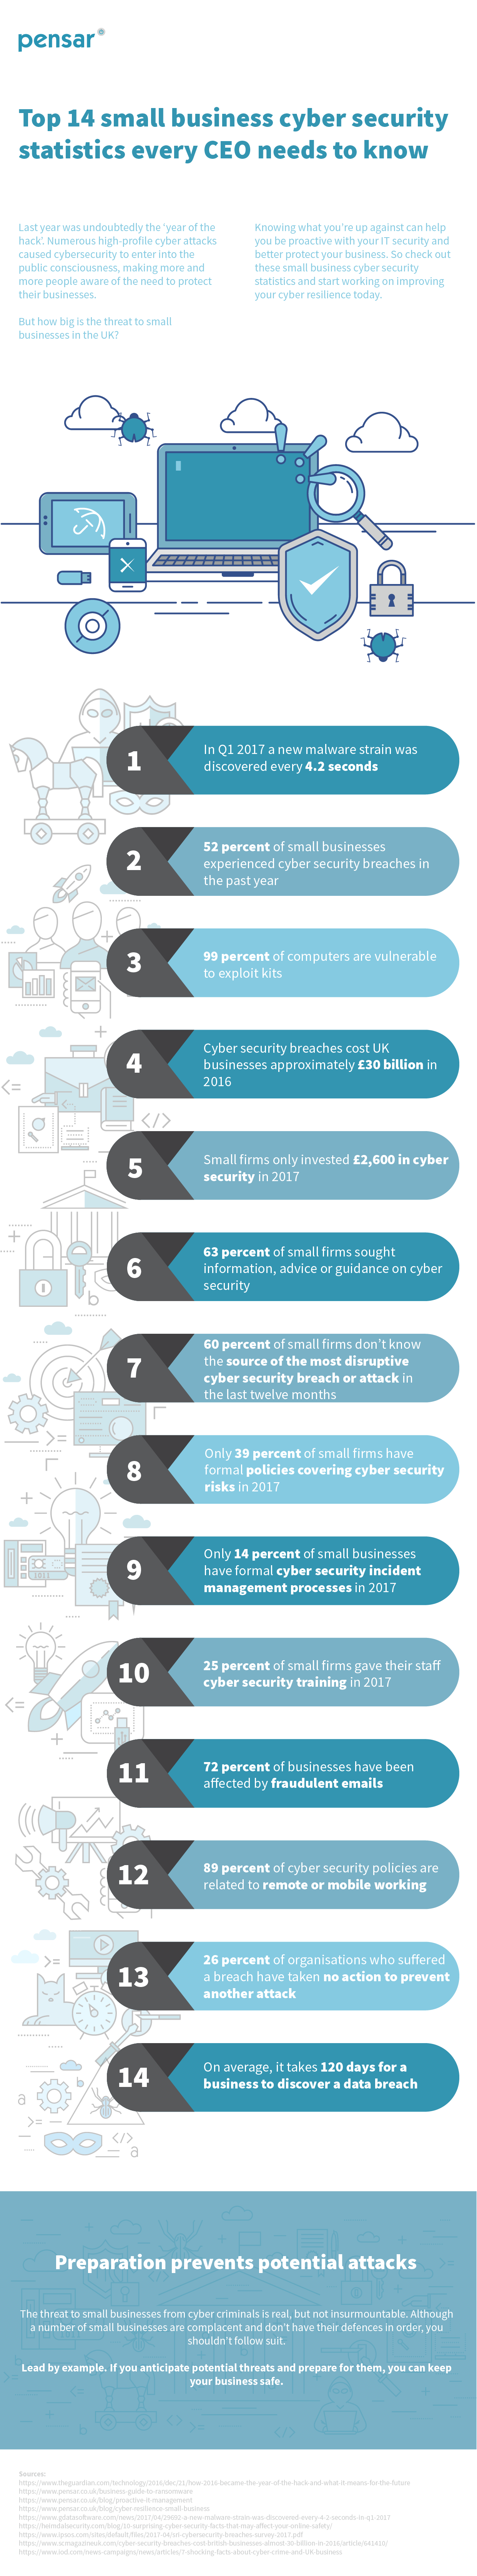 Pensar infographic Top 14 small business cyber security statistics every CEO needs to know v.1-01.png